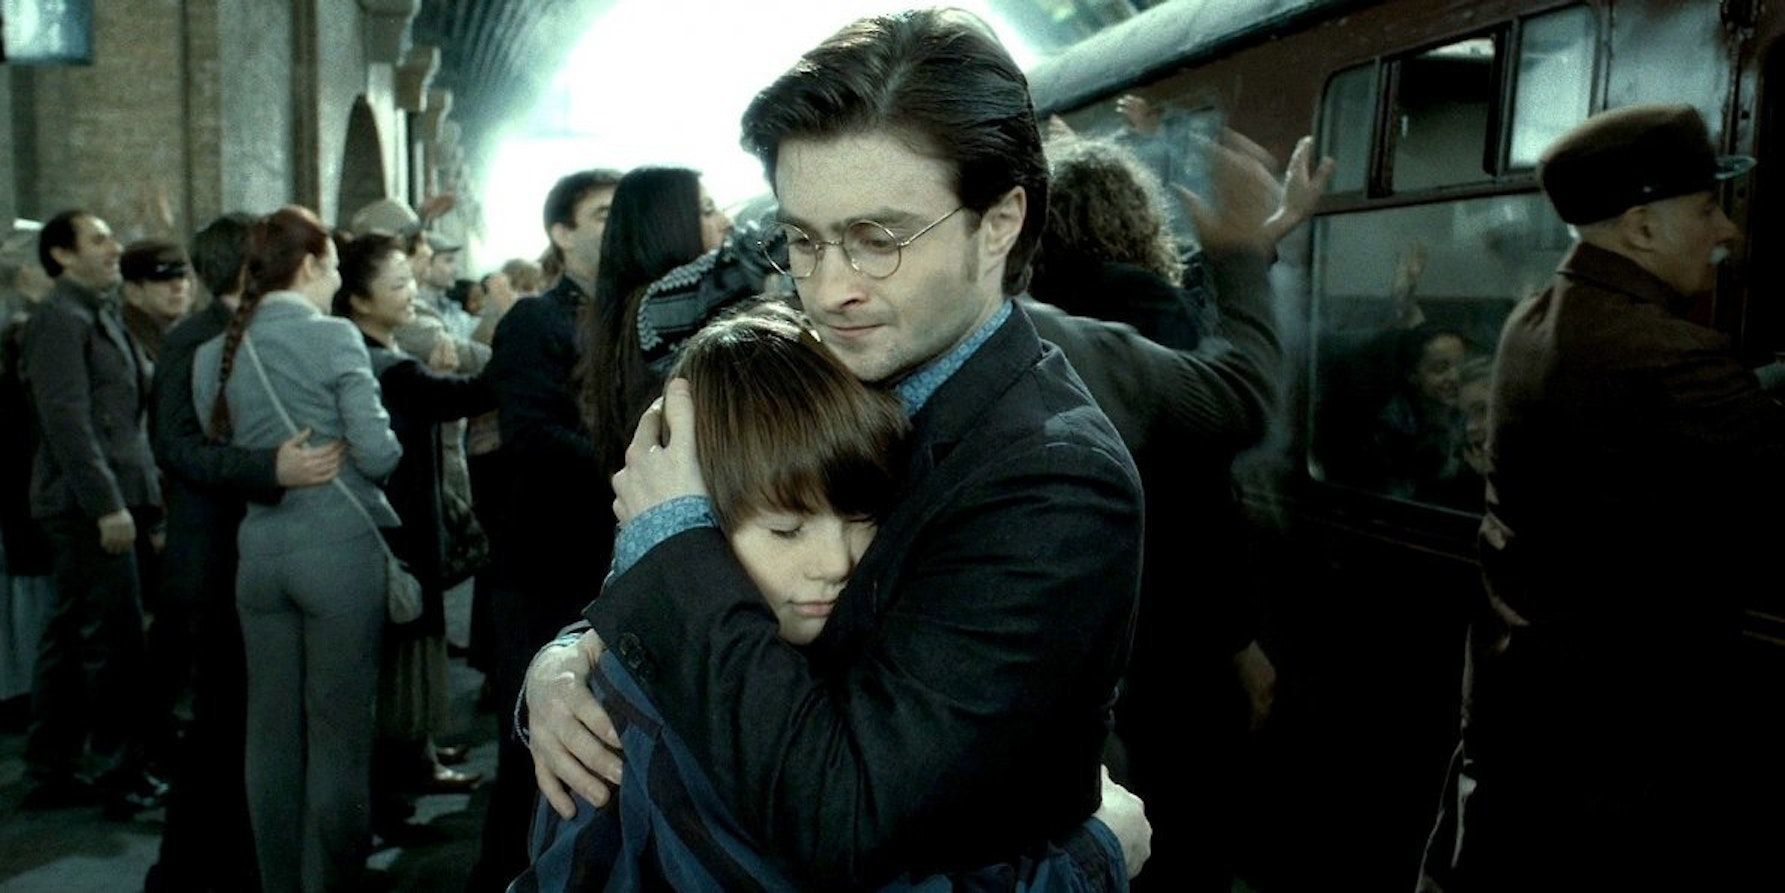 Harry Potter and Albus Potter in the final scene of the film version of 'Harry Potter and the Deathly Hallows'